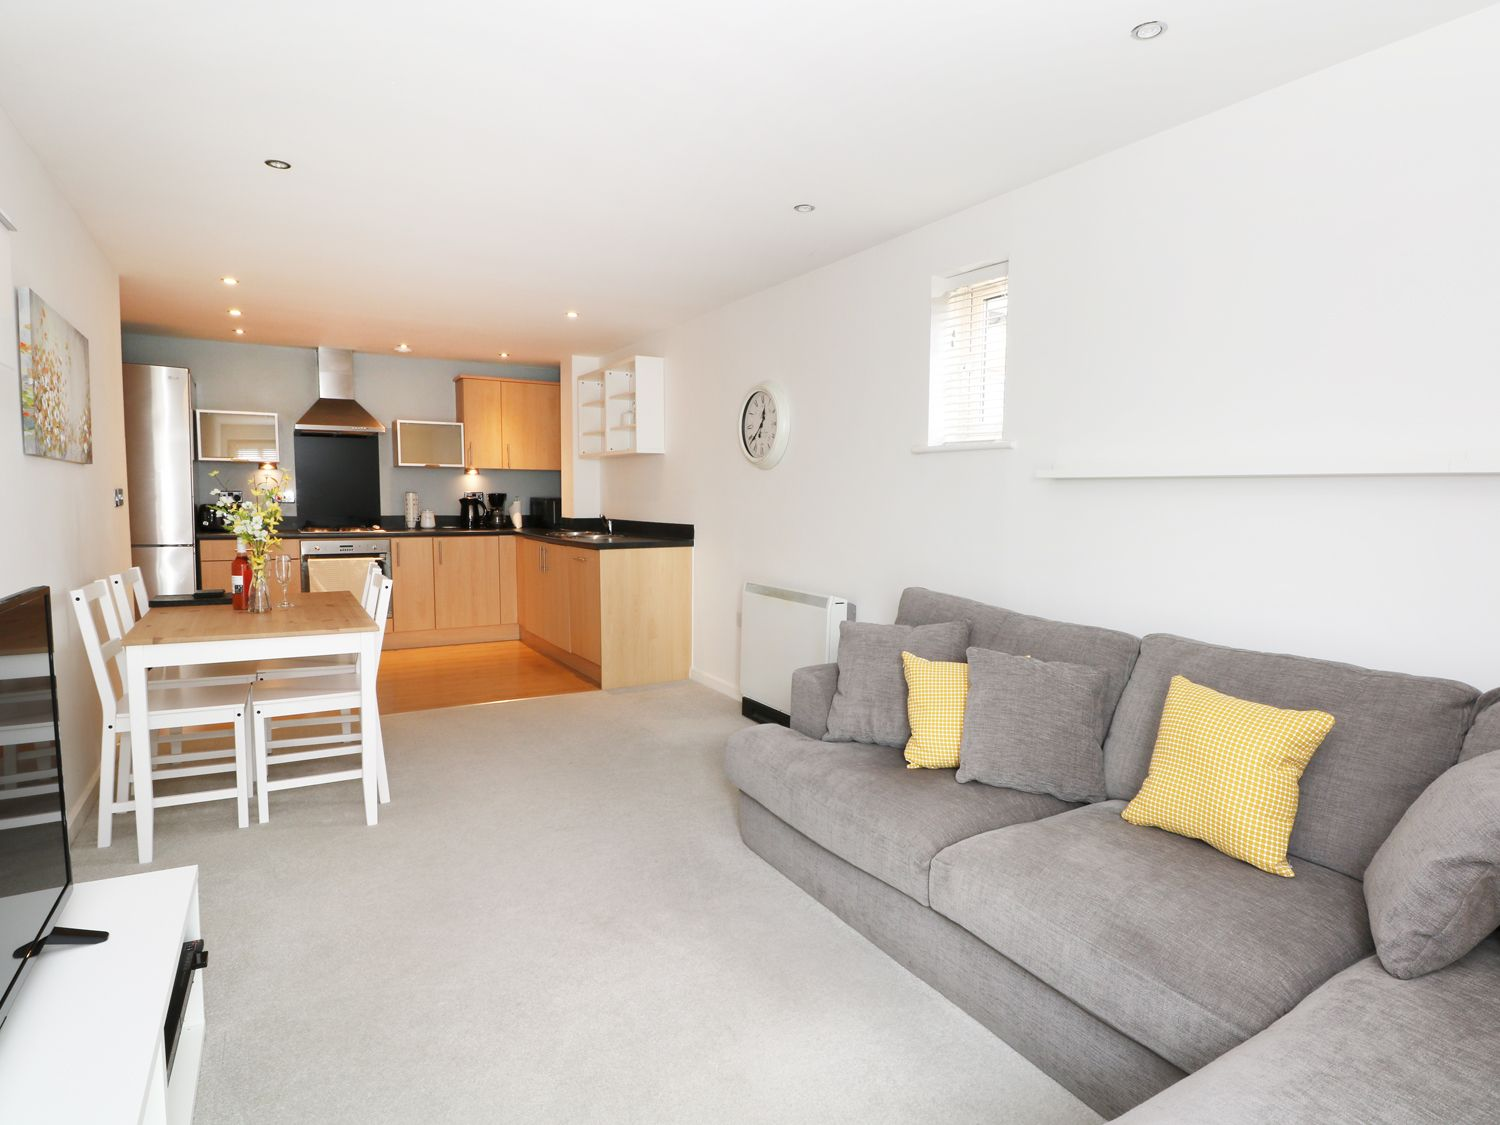 25 Saddlery Way in Chester - sleeps 4 people